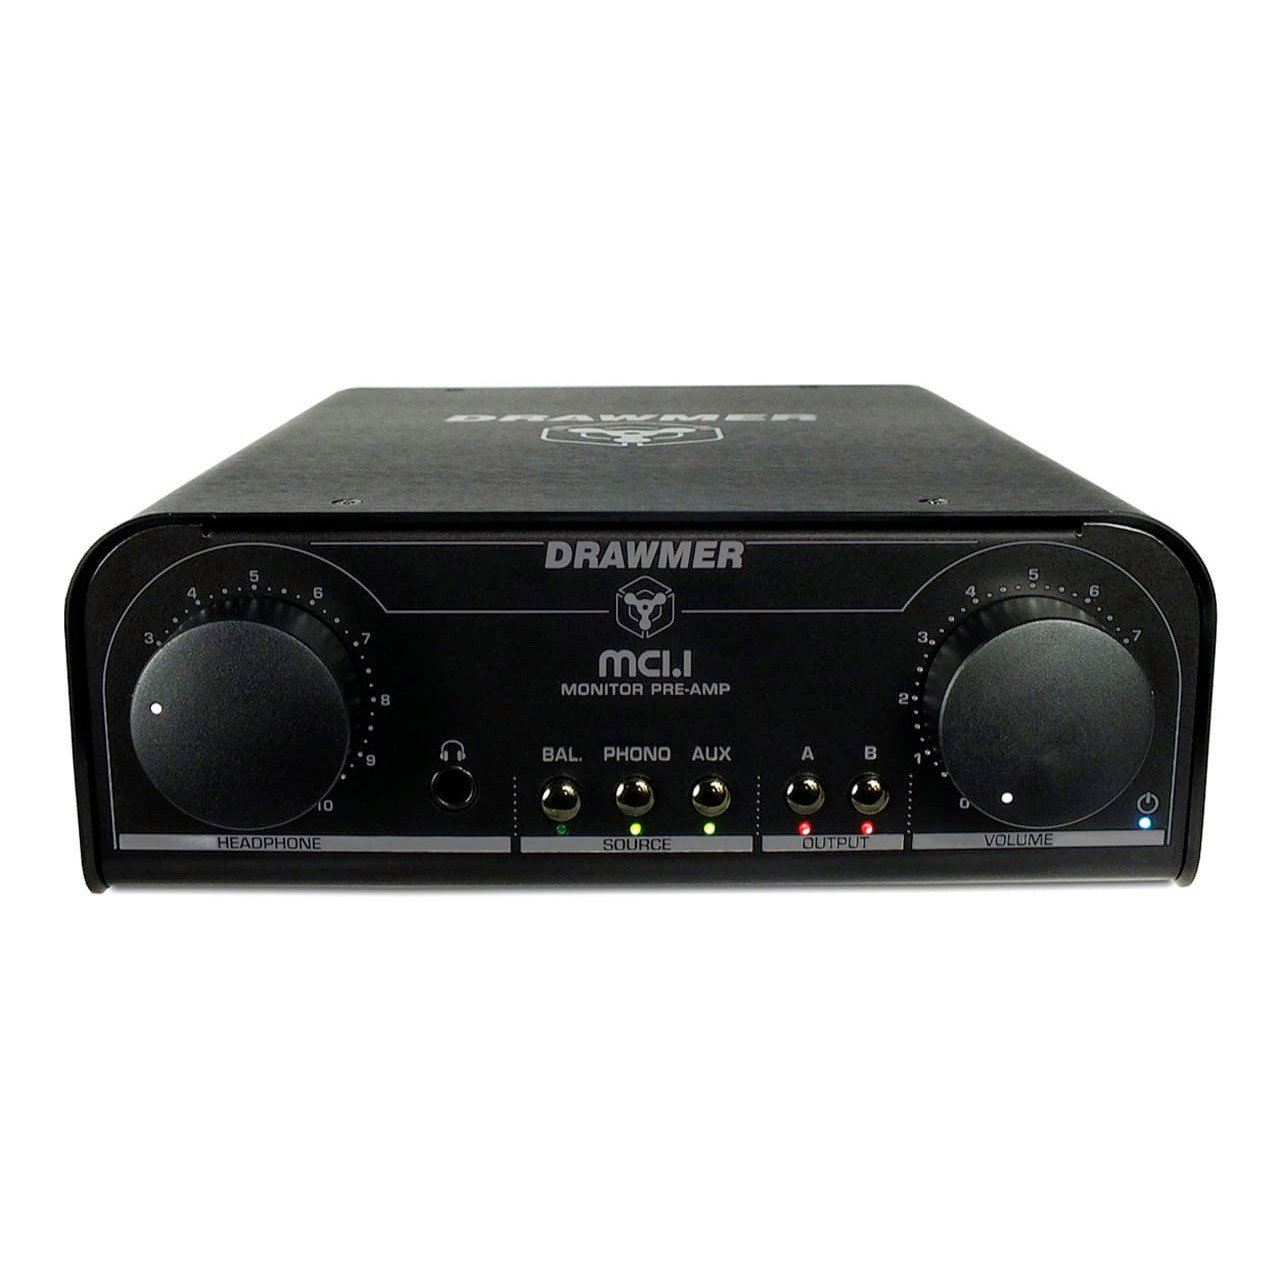 Monitor Controllers - Drawmer MC1.1 - Monitor PreAmp